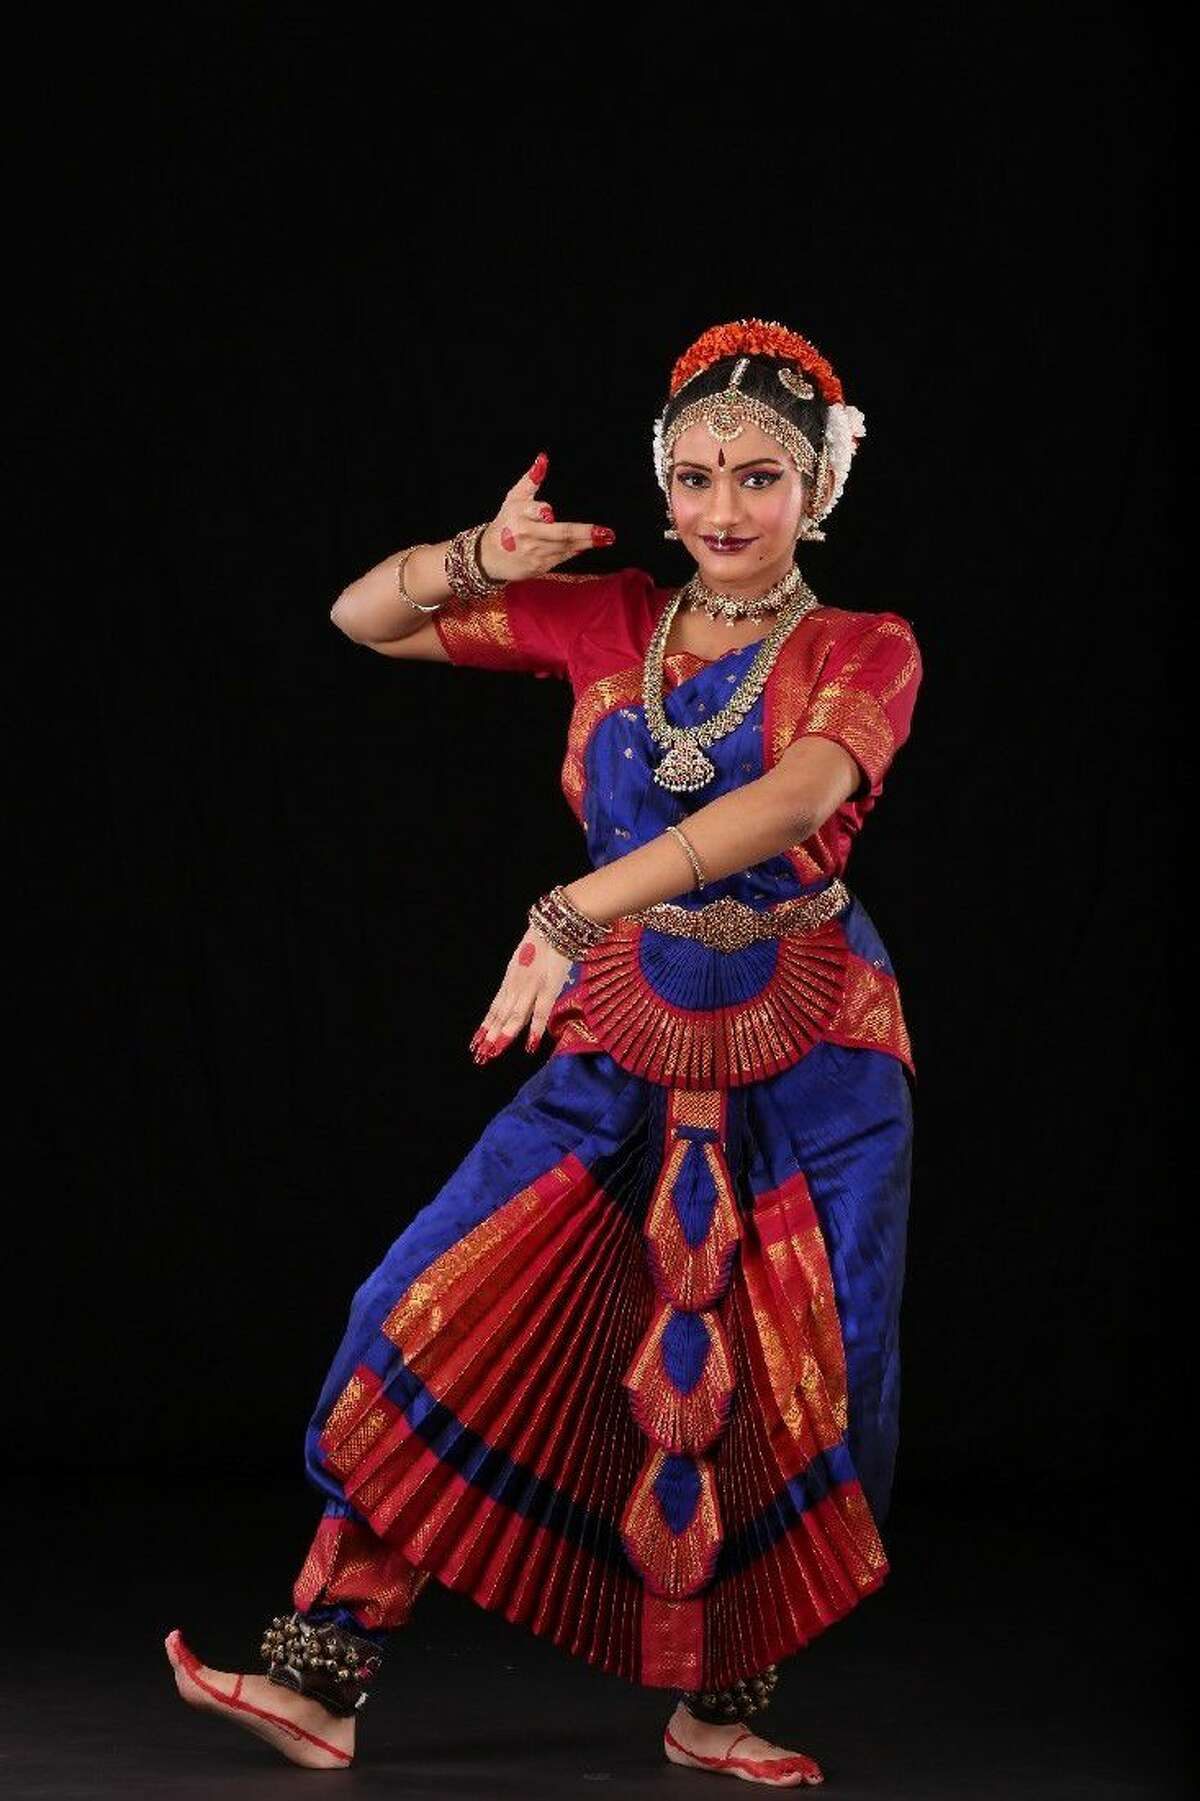 Neha Bhat, 16, presented her Arangetram, her first formal solo of Bharatnatyam, (the Indian classical dance) performance at the Berry Center Theater on July 23.